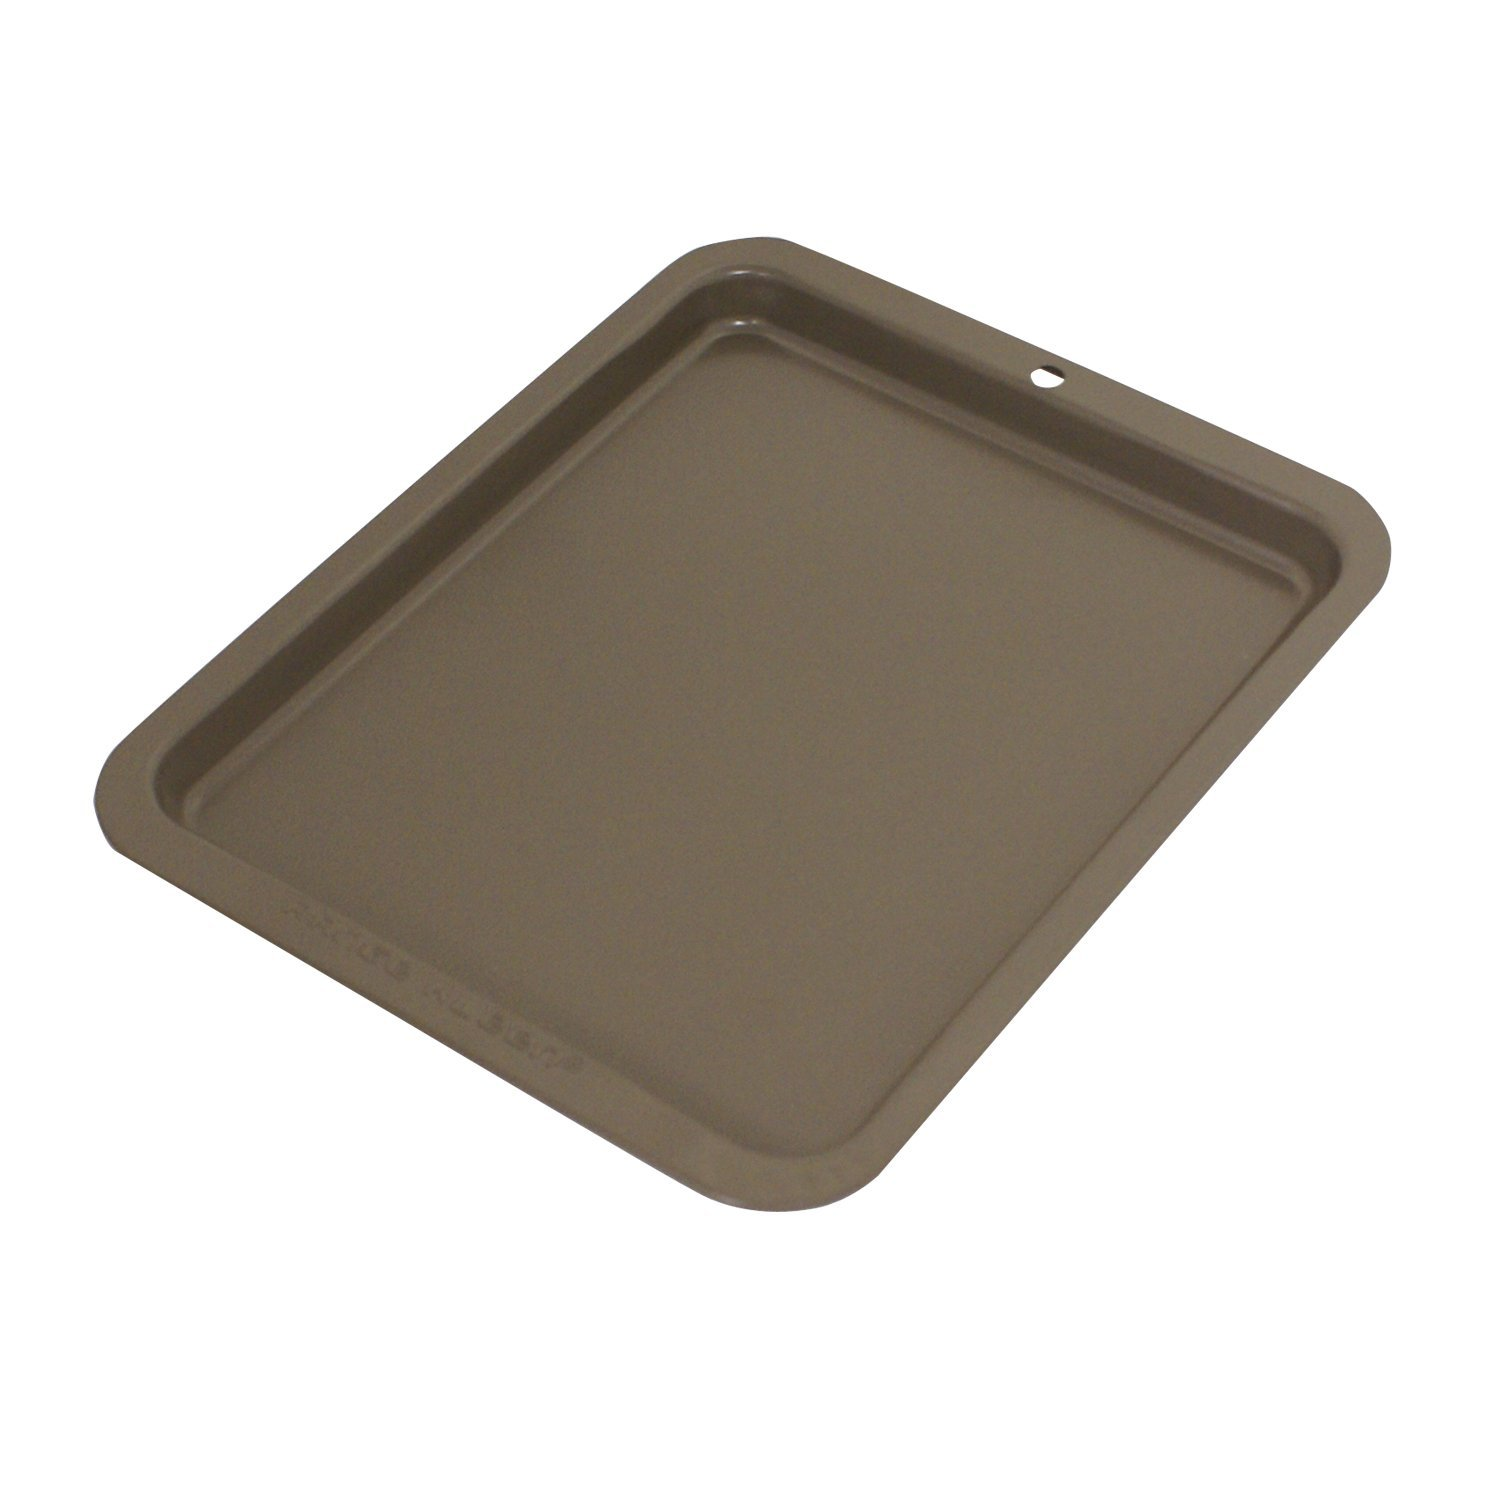 Cookie sheet clipart. Amazon com baking sheets